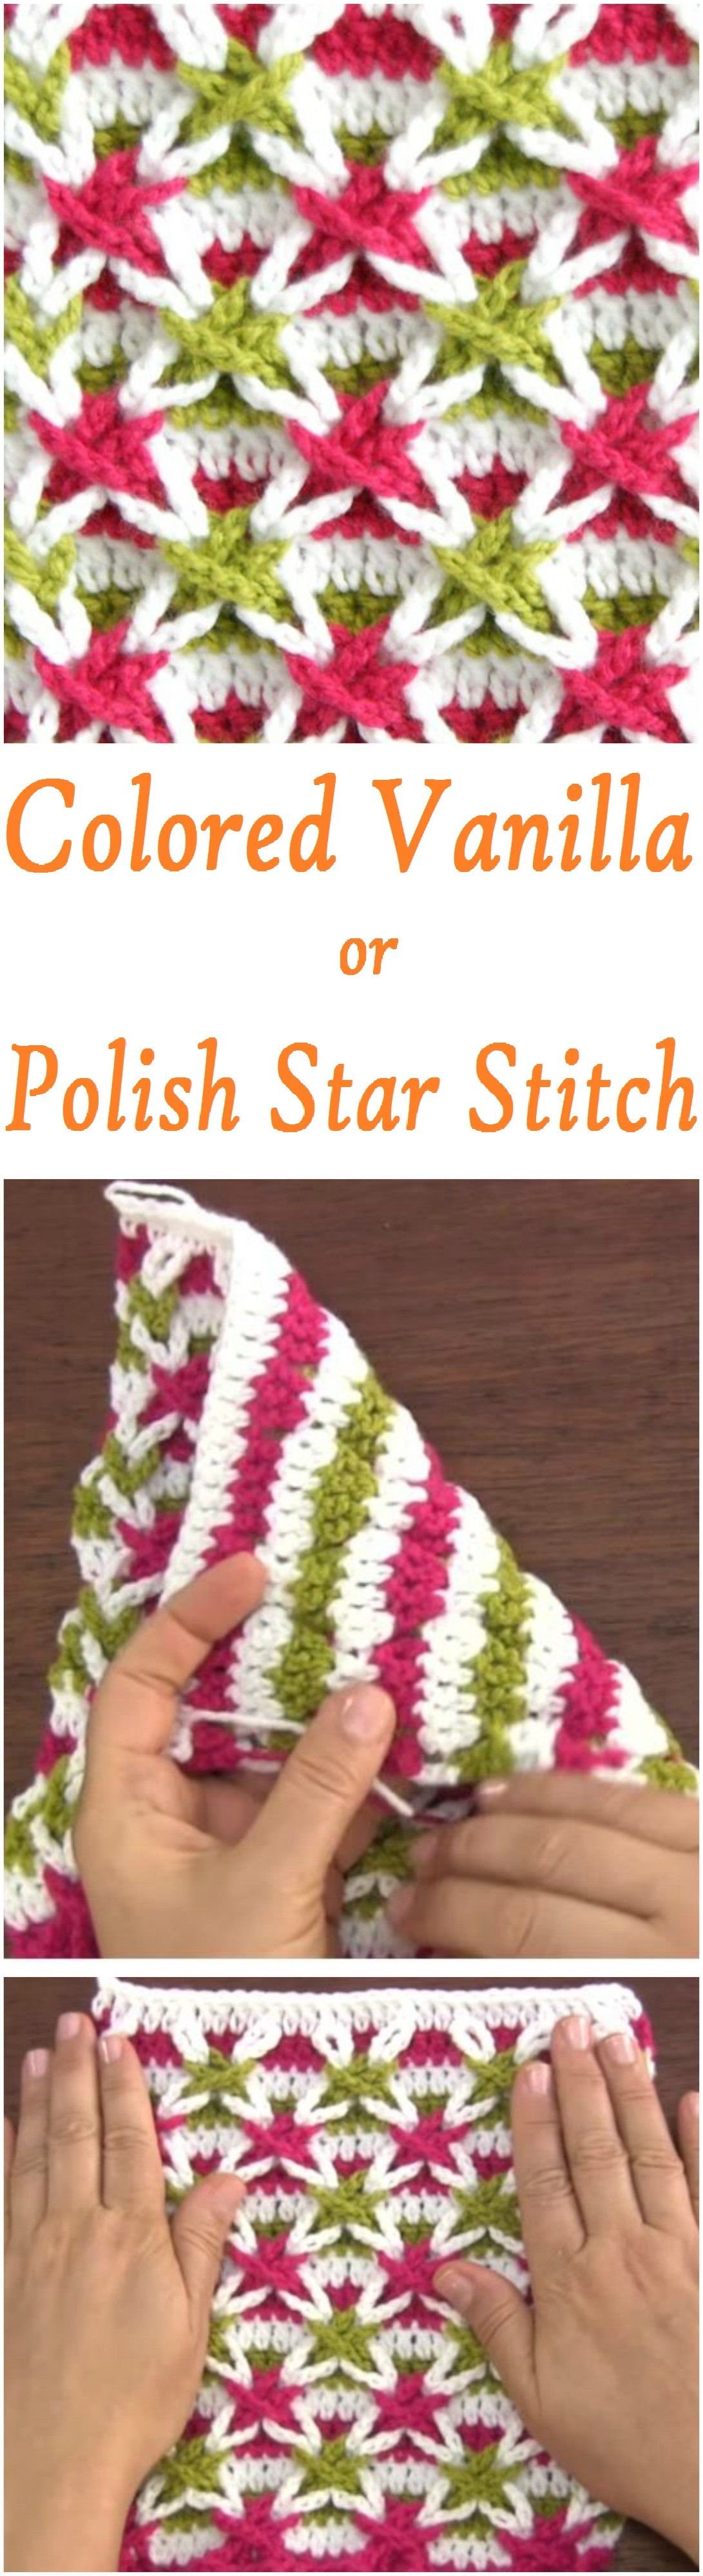 Crochet Polish star or Vanilla Star | Crochet ❤ | Pinterest ...